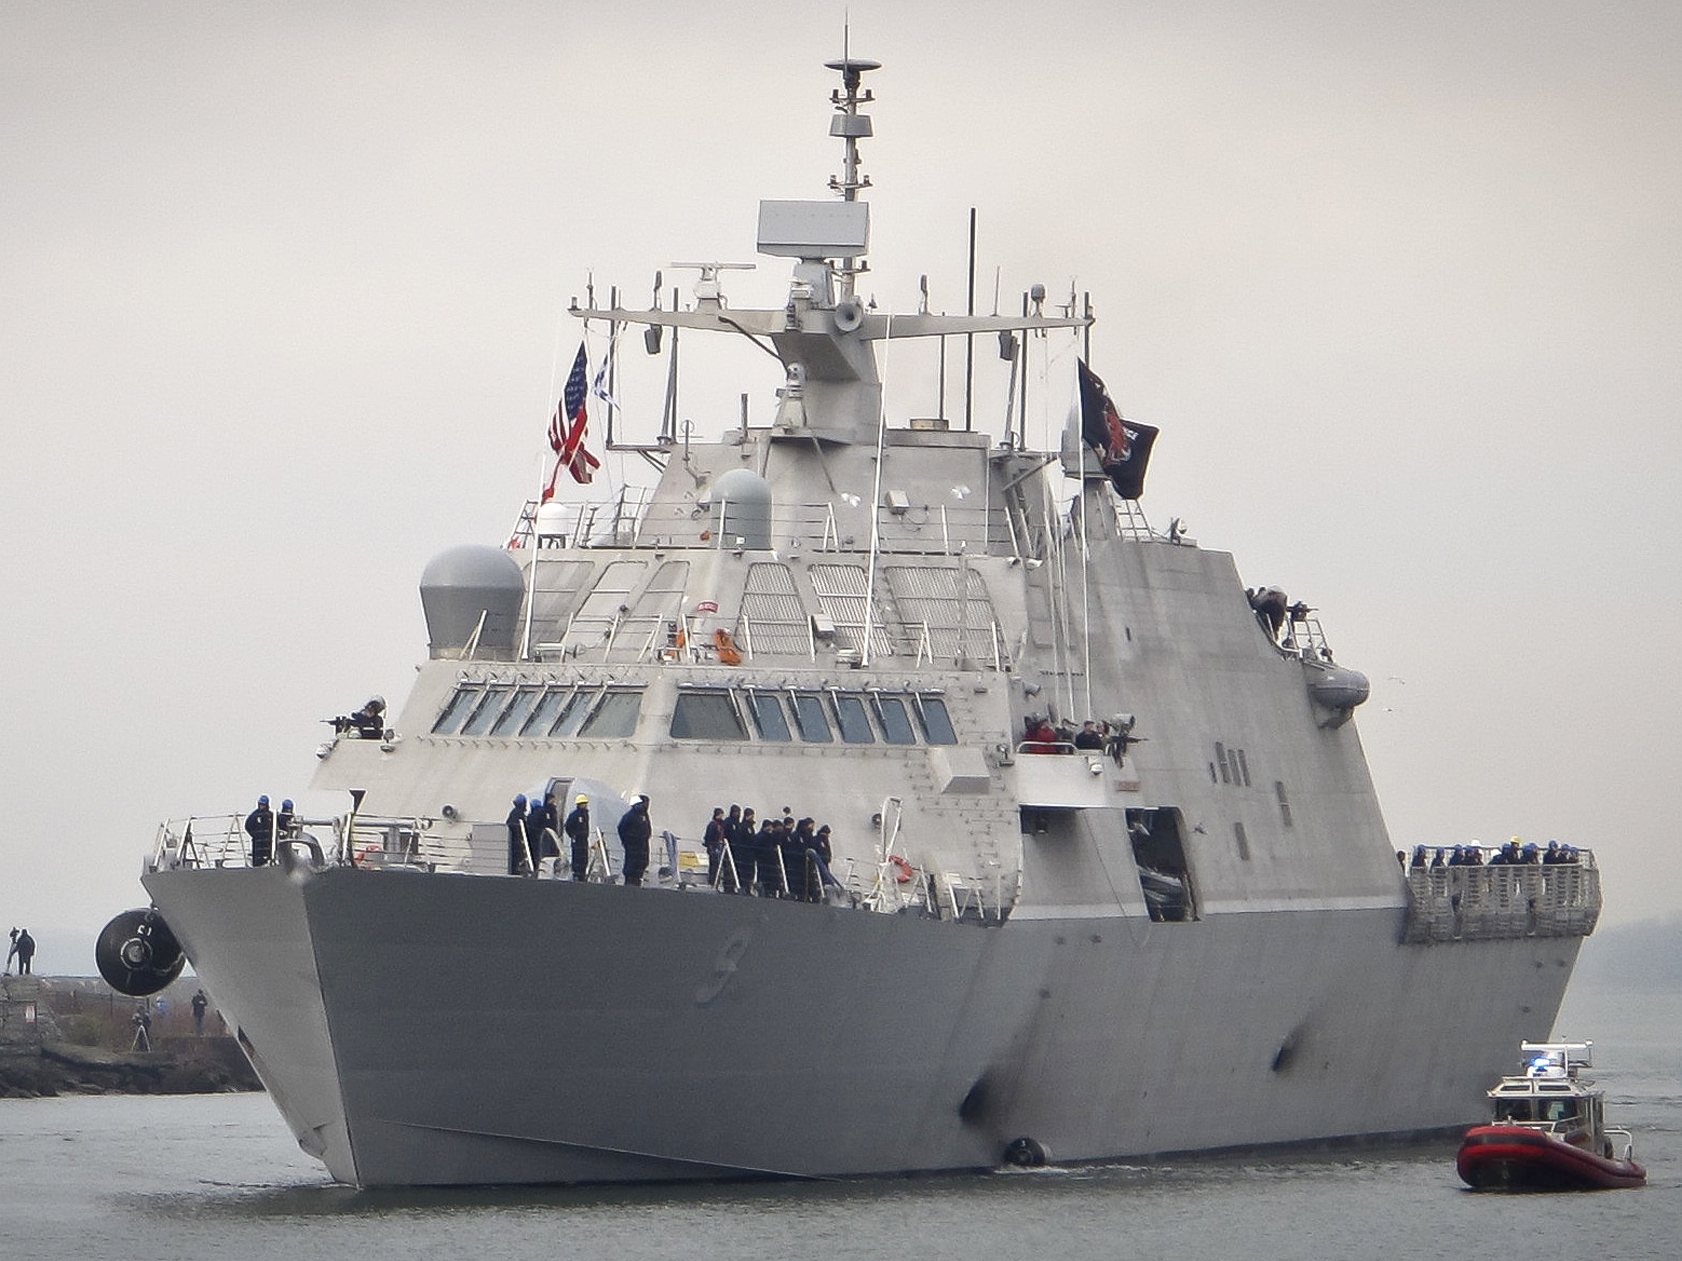 The Navy's new USS Little Rock arrives at the harbor in Buffalo N.Y. on Dec. 4. In imposing tariffs on steel and aluminum imports President Trump said the U.S. military should be as self-sufficient as possible